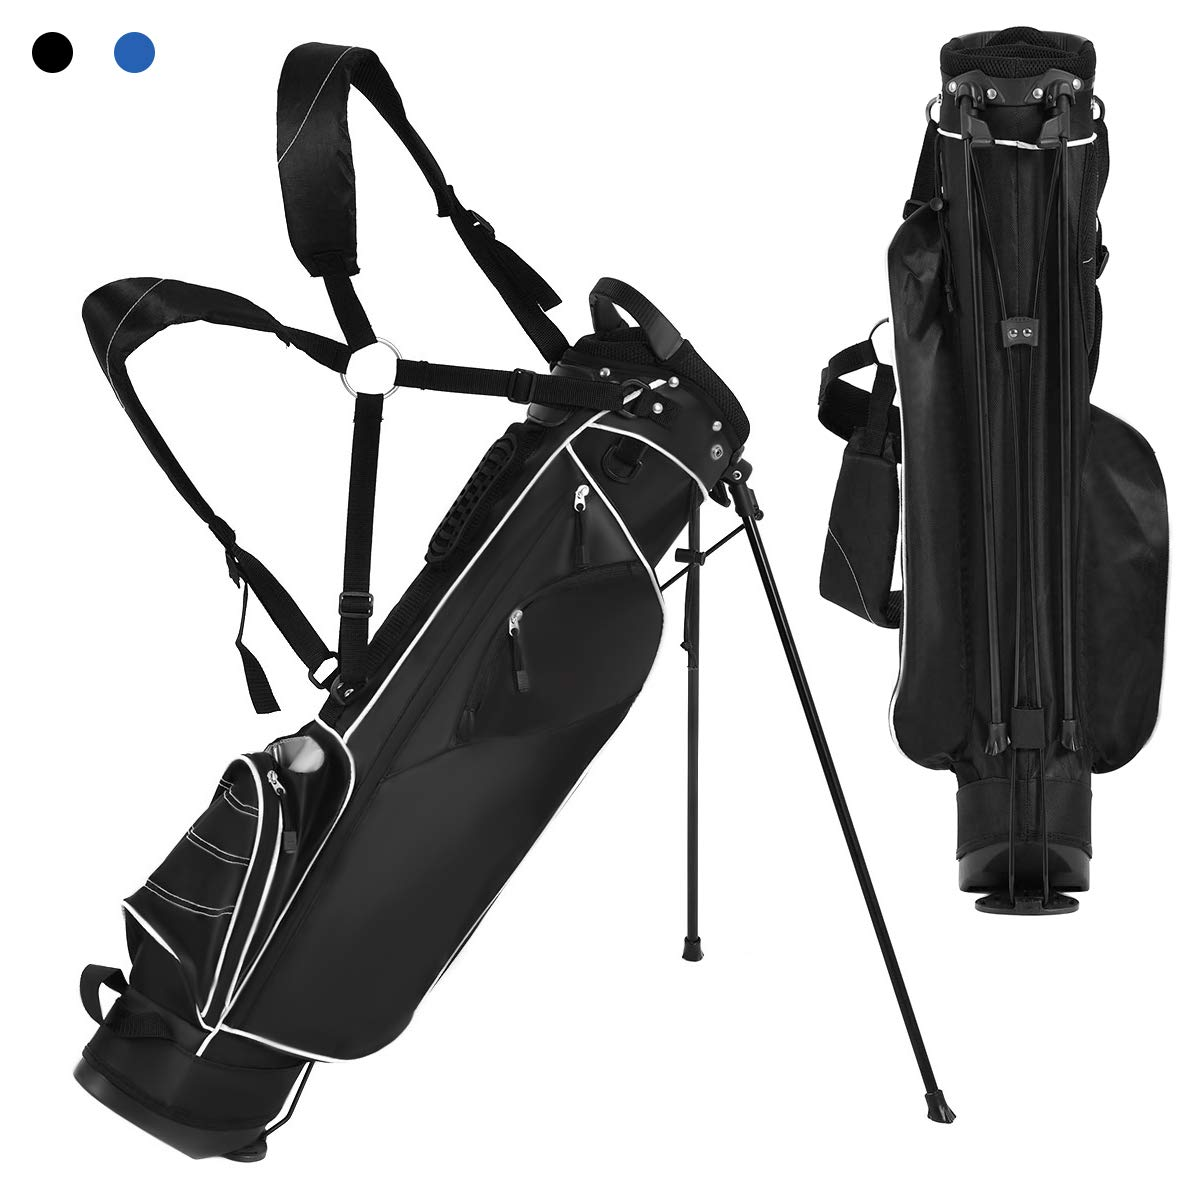 Tangkula Golf Stand Bag, Lightweight Organized Sunday Bag Easy Carry Shoulder Bag with 3 Way Dividers and 4 Pockets, Black by Tangkula